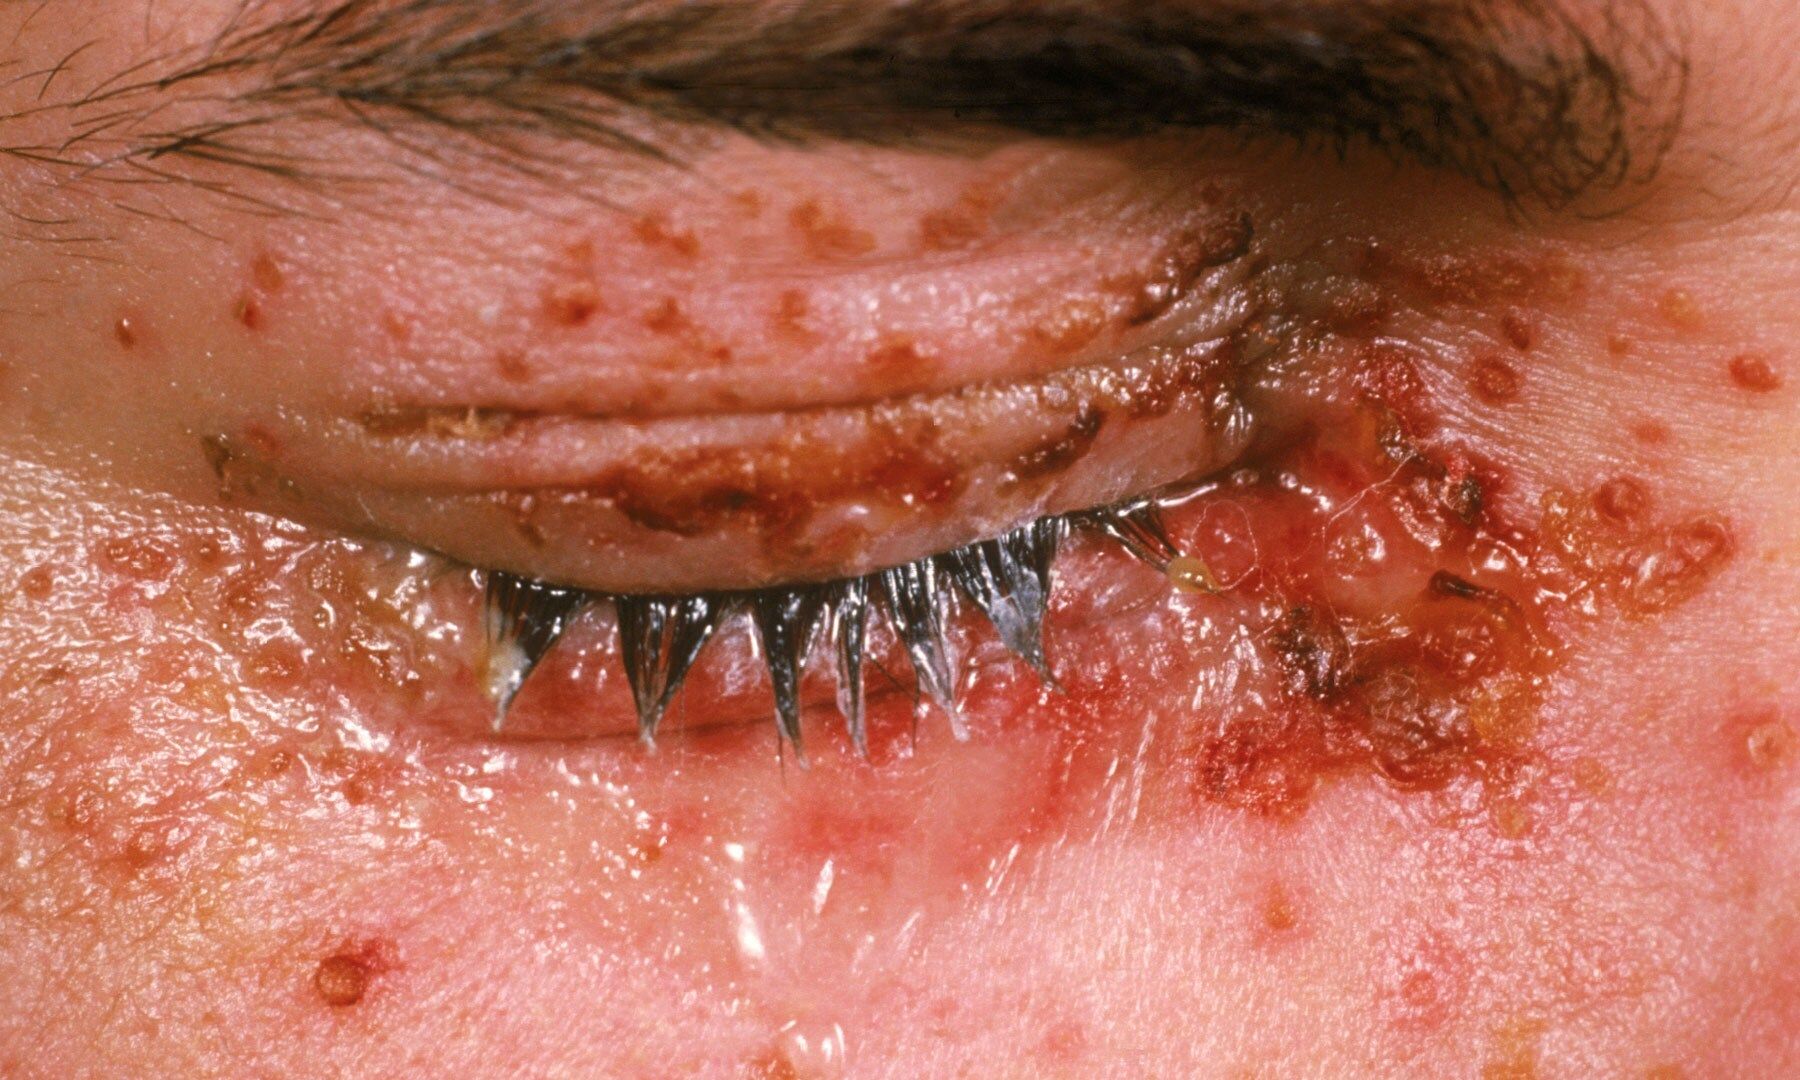 herpes symptom pictures #10